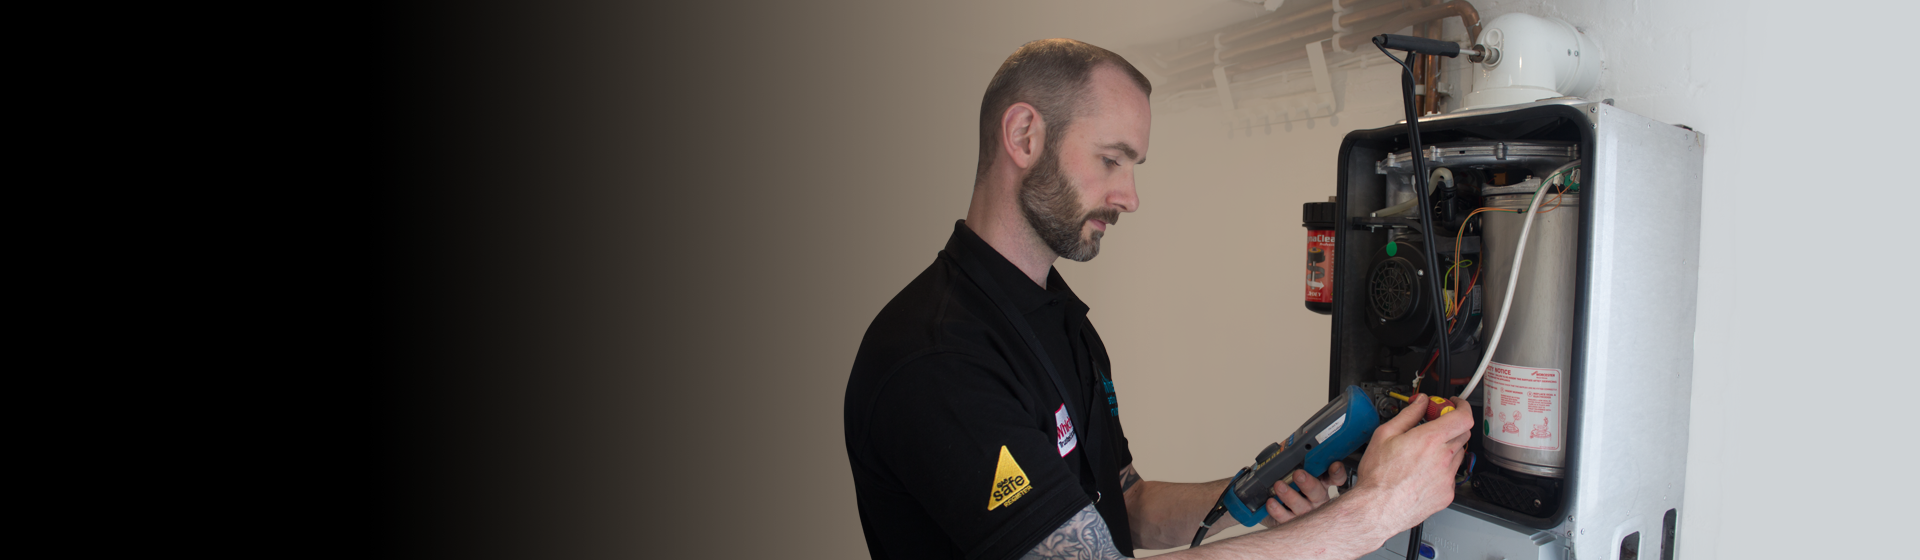 Boiler Service Repair Installations High Wycombe